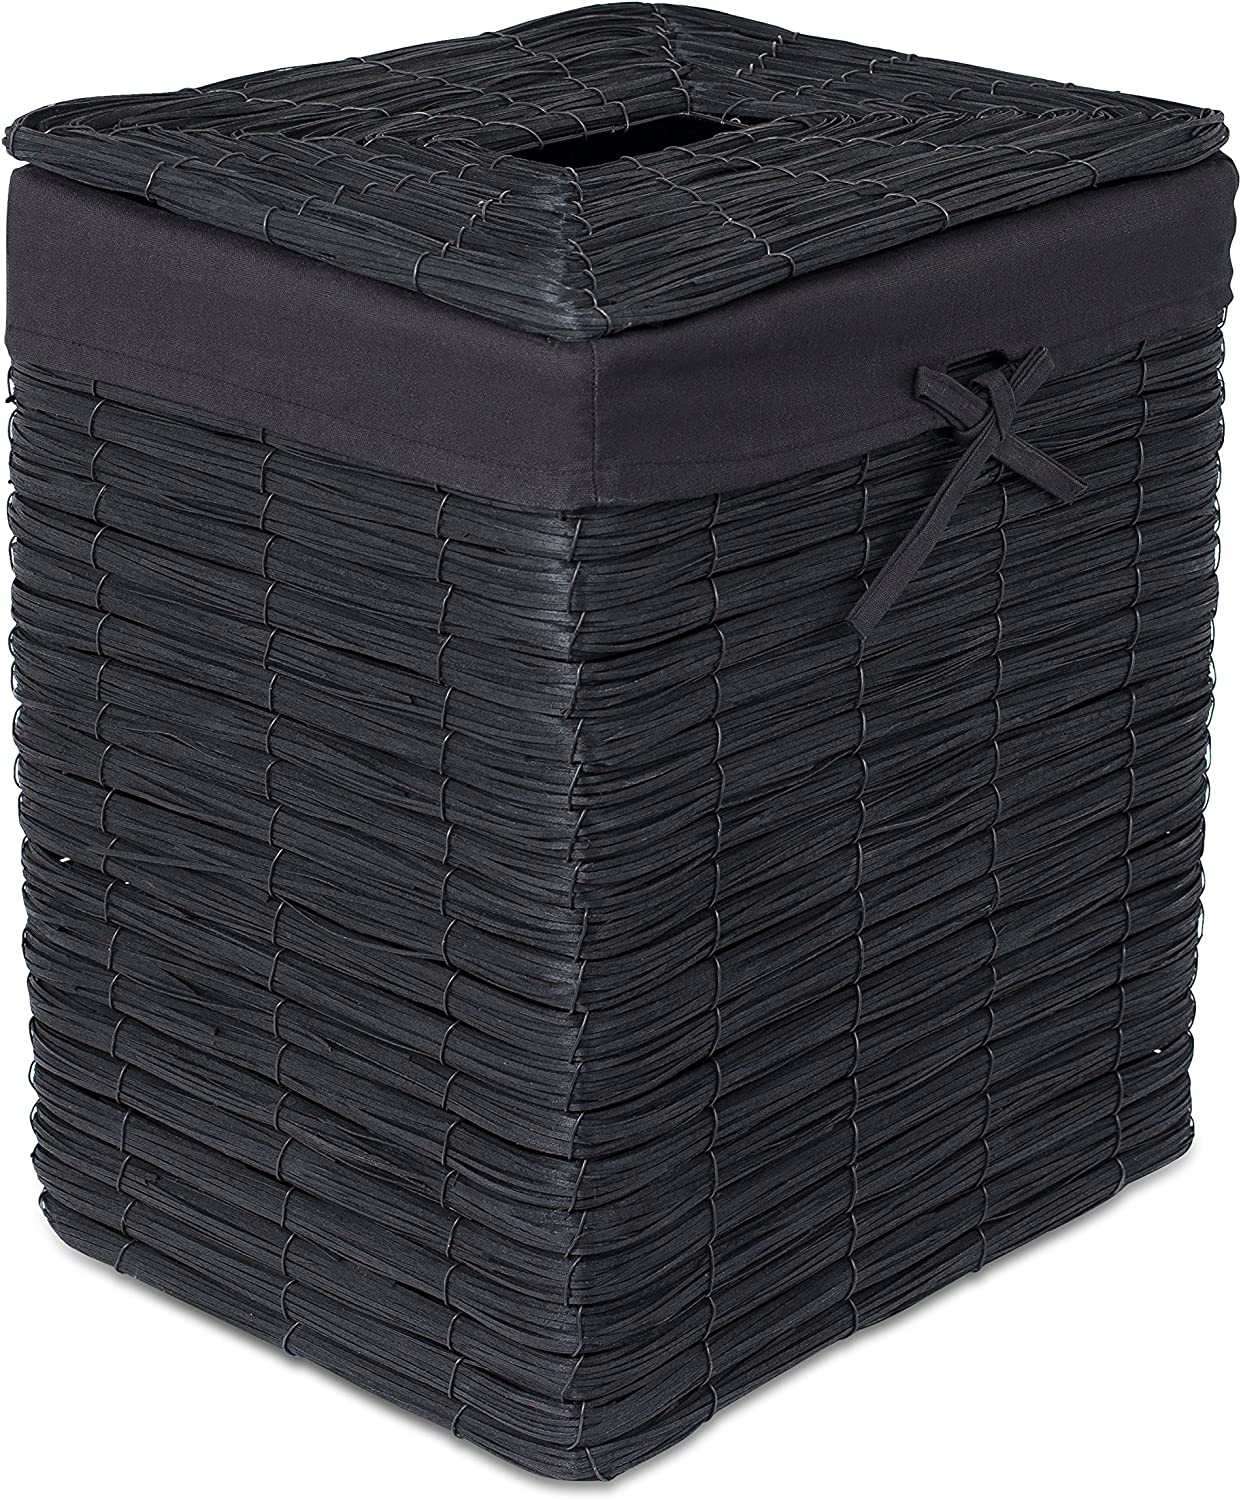 BIRDROCK HOME Rustic Woven Wood Peel Laundry Hamper with Lid - Thin Weave Laundry Basket - Removable Liner - Dirty Clothes Storage Bin - Black